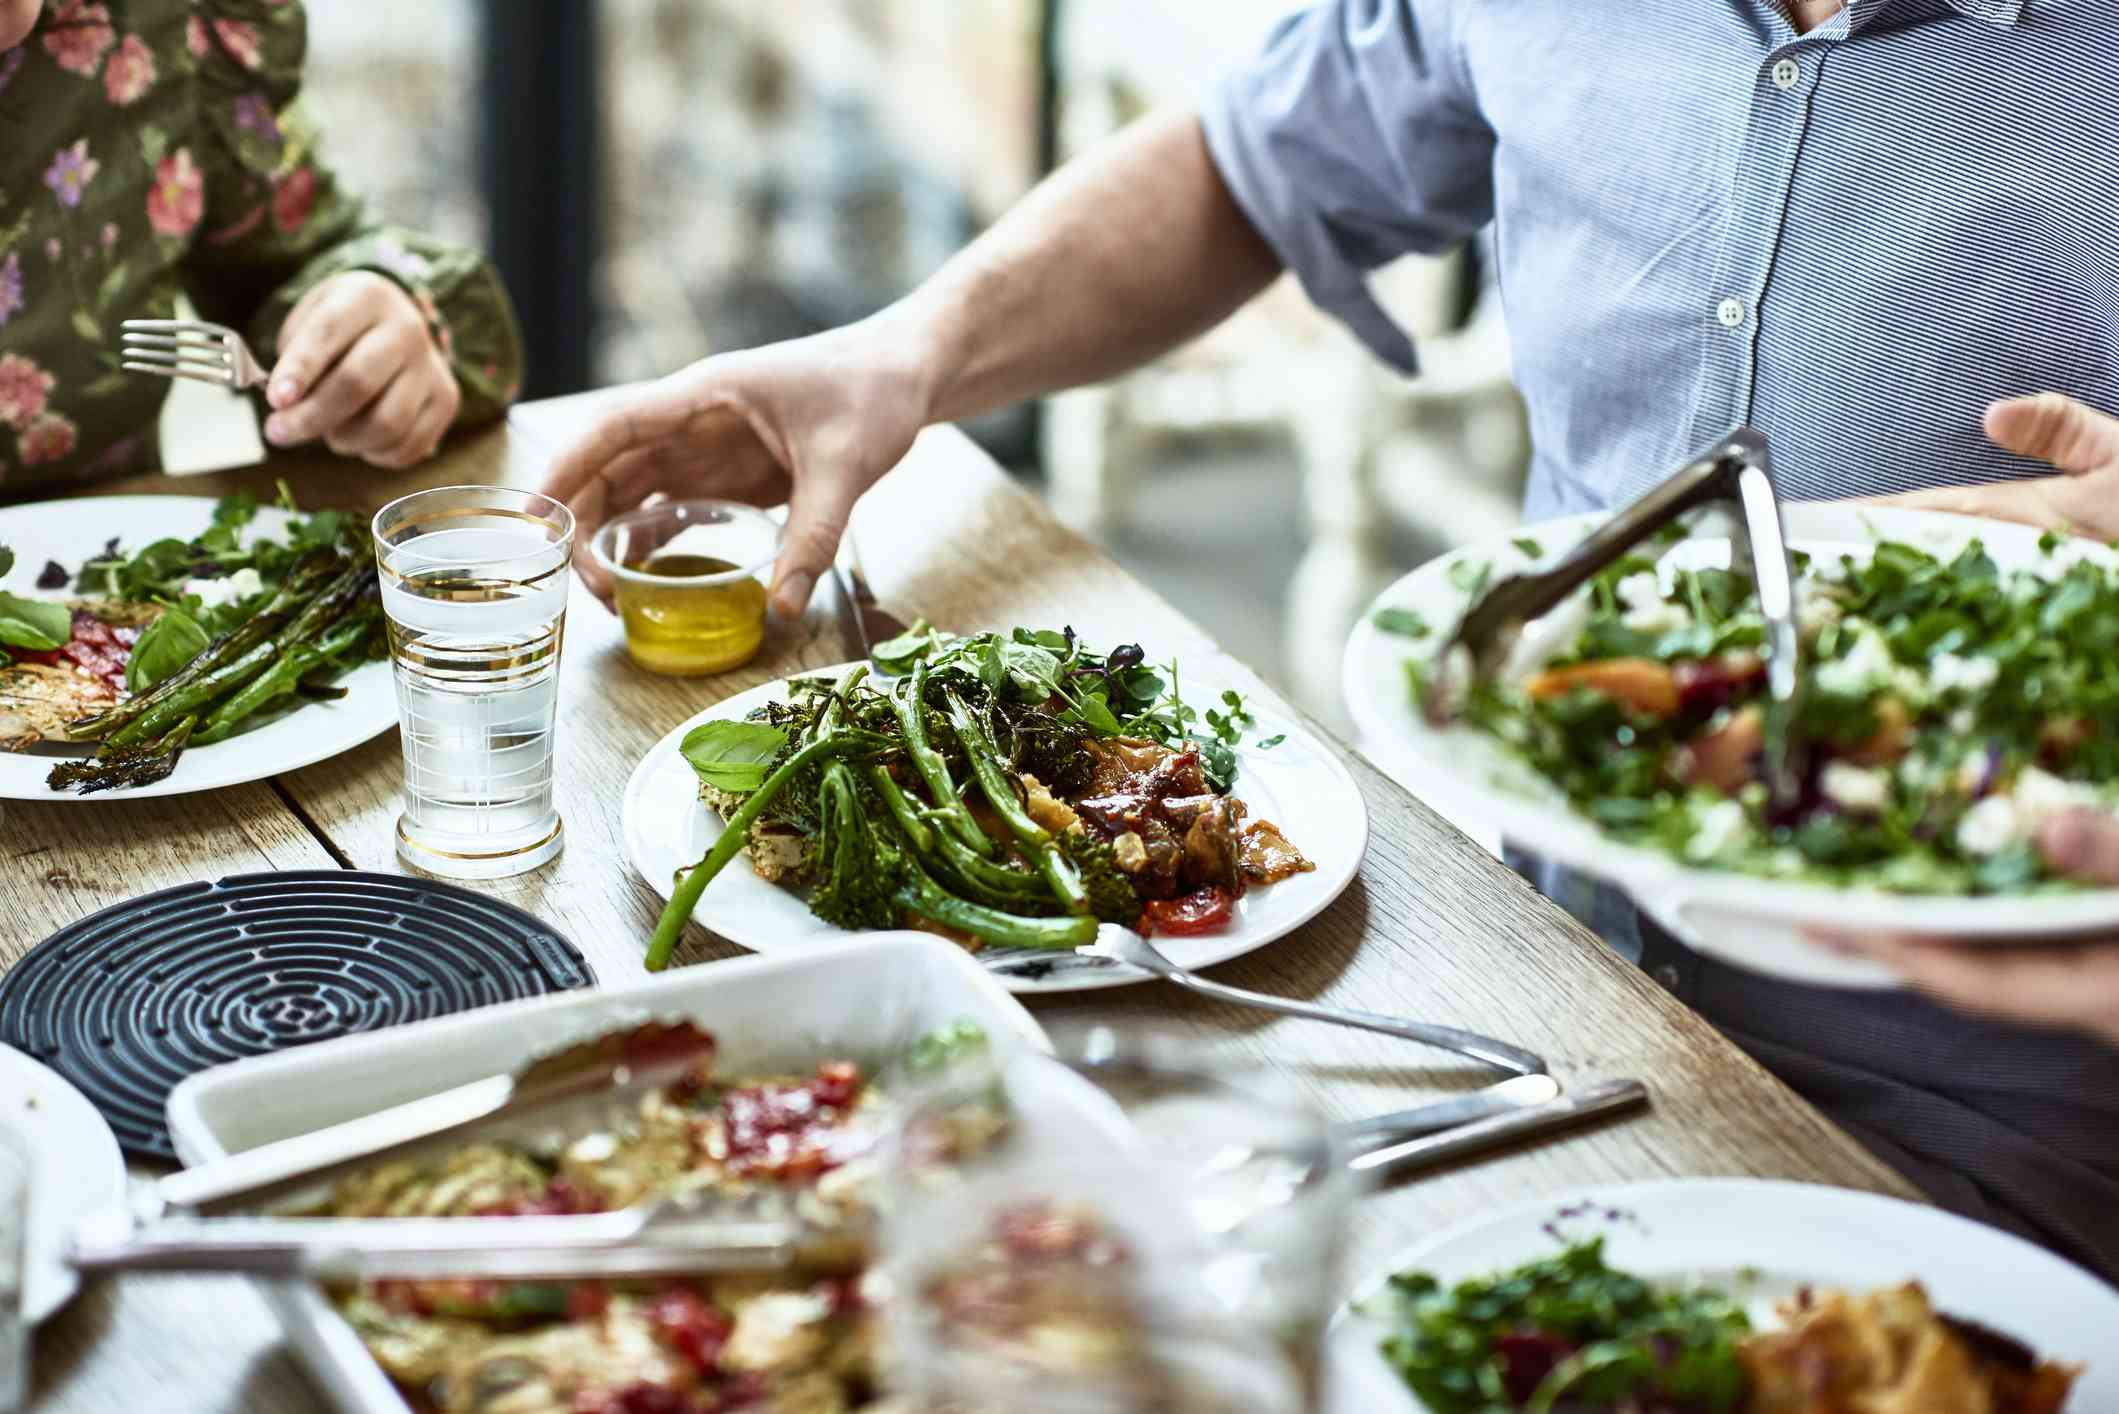 Close up of plates full of greens and tomatoes and people sitting around a table